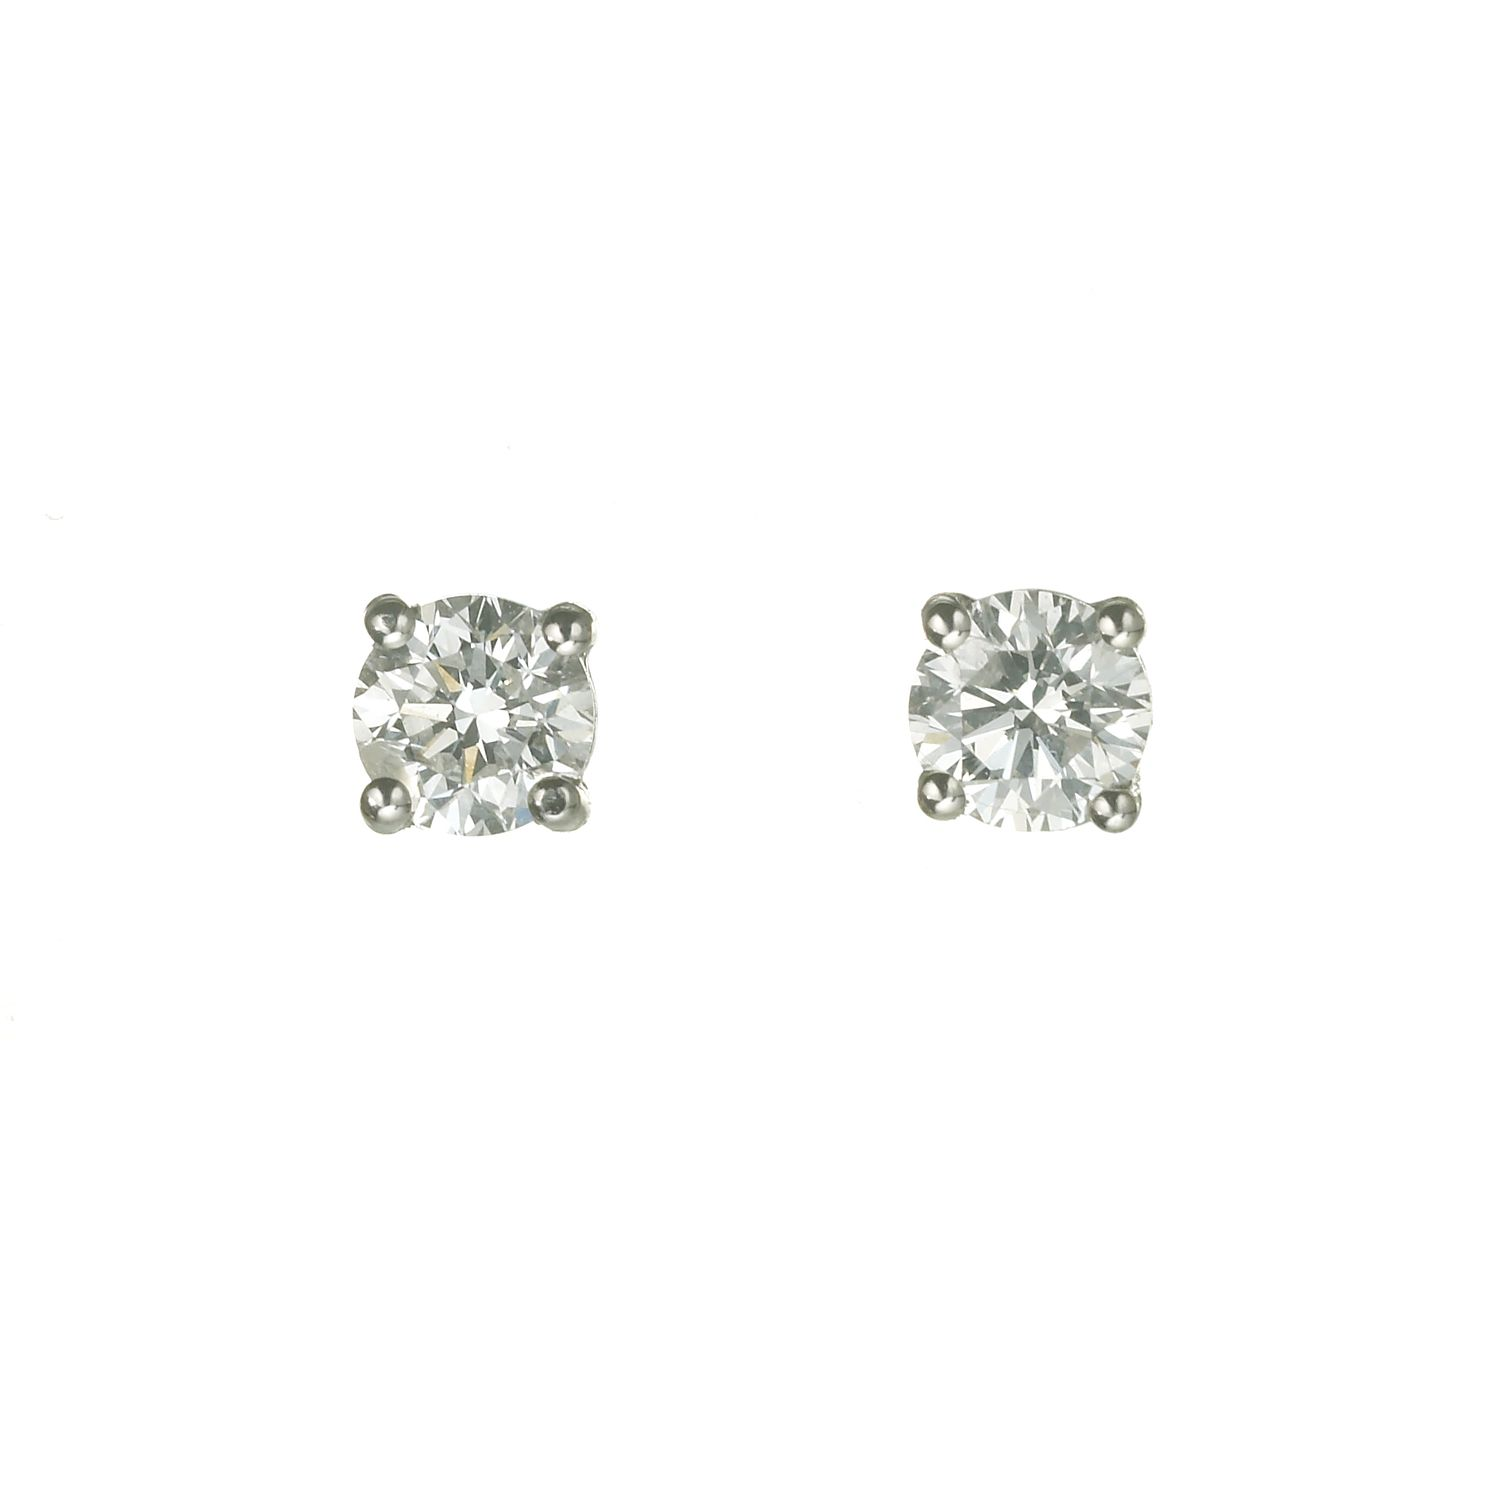 18ct White Gold 0.75ct Diamond Solitaire Stud Earrings - Product number 5972590